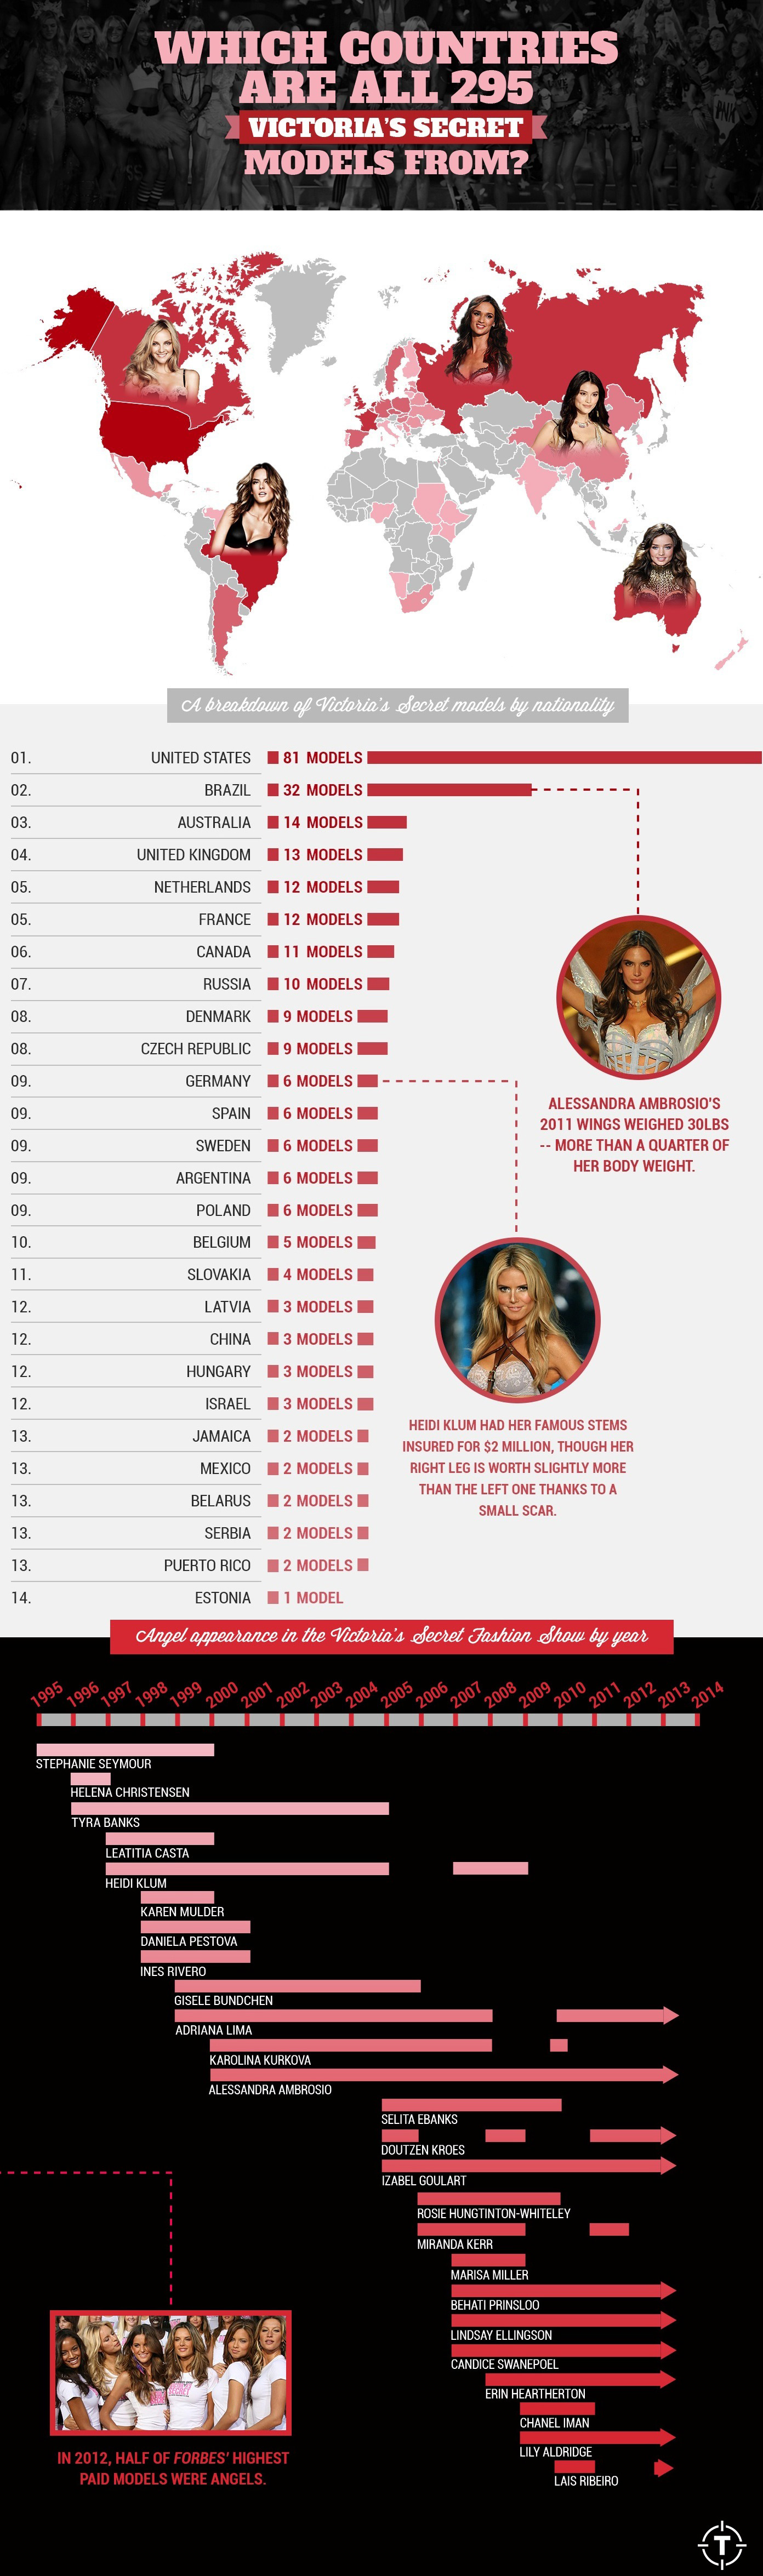 Victoria's Secret Models Infographic